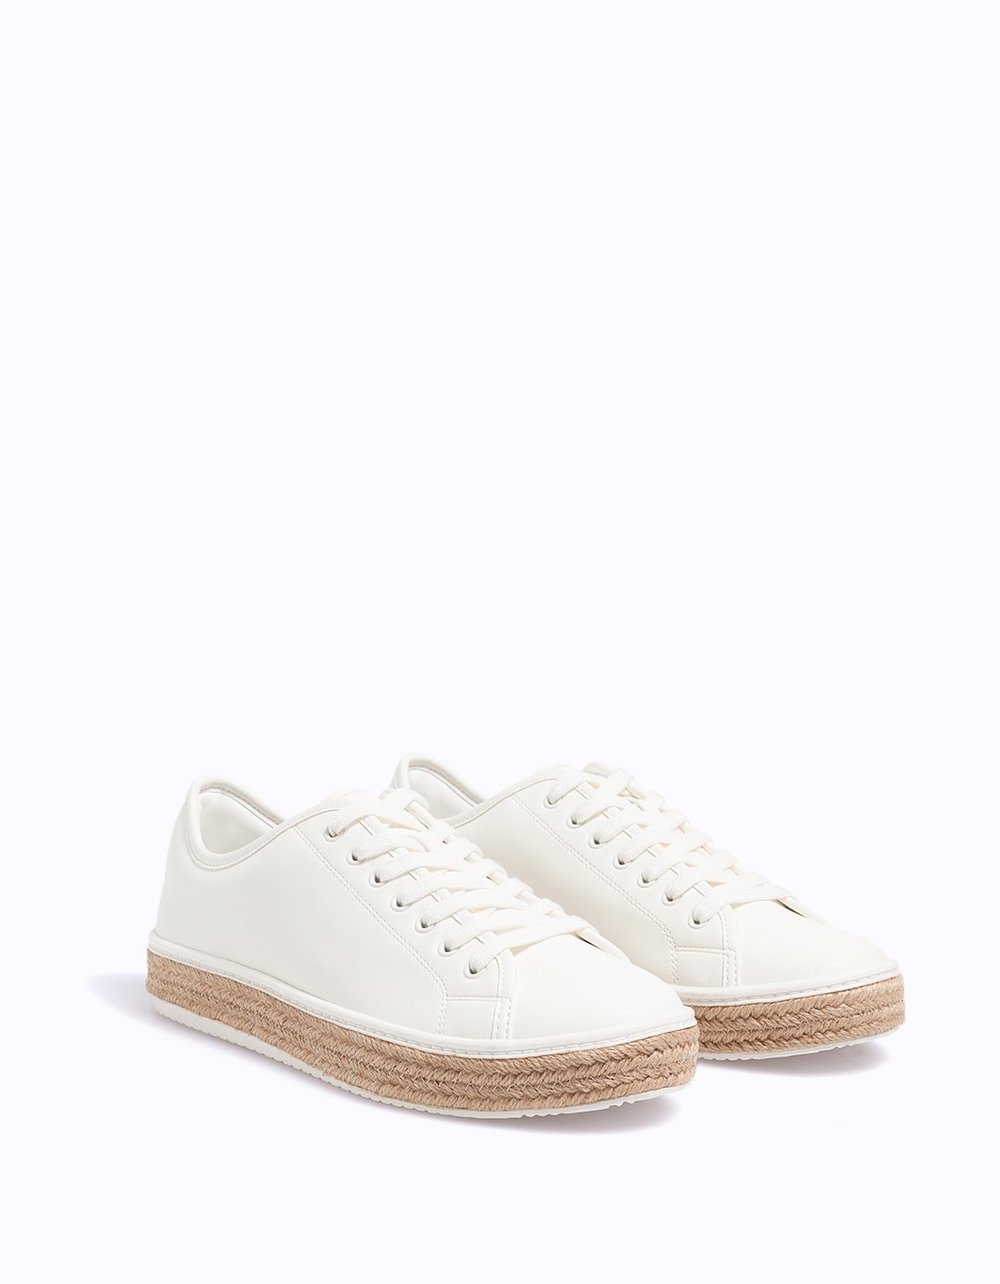 Stradivarius Sneakers